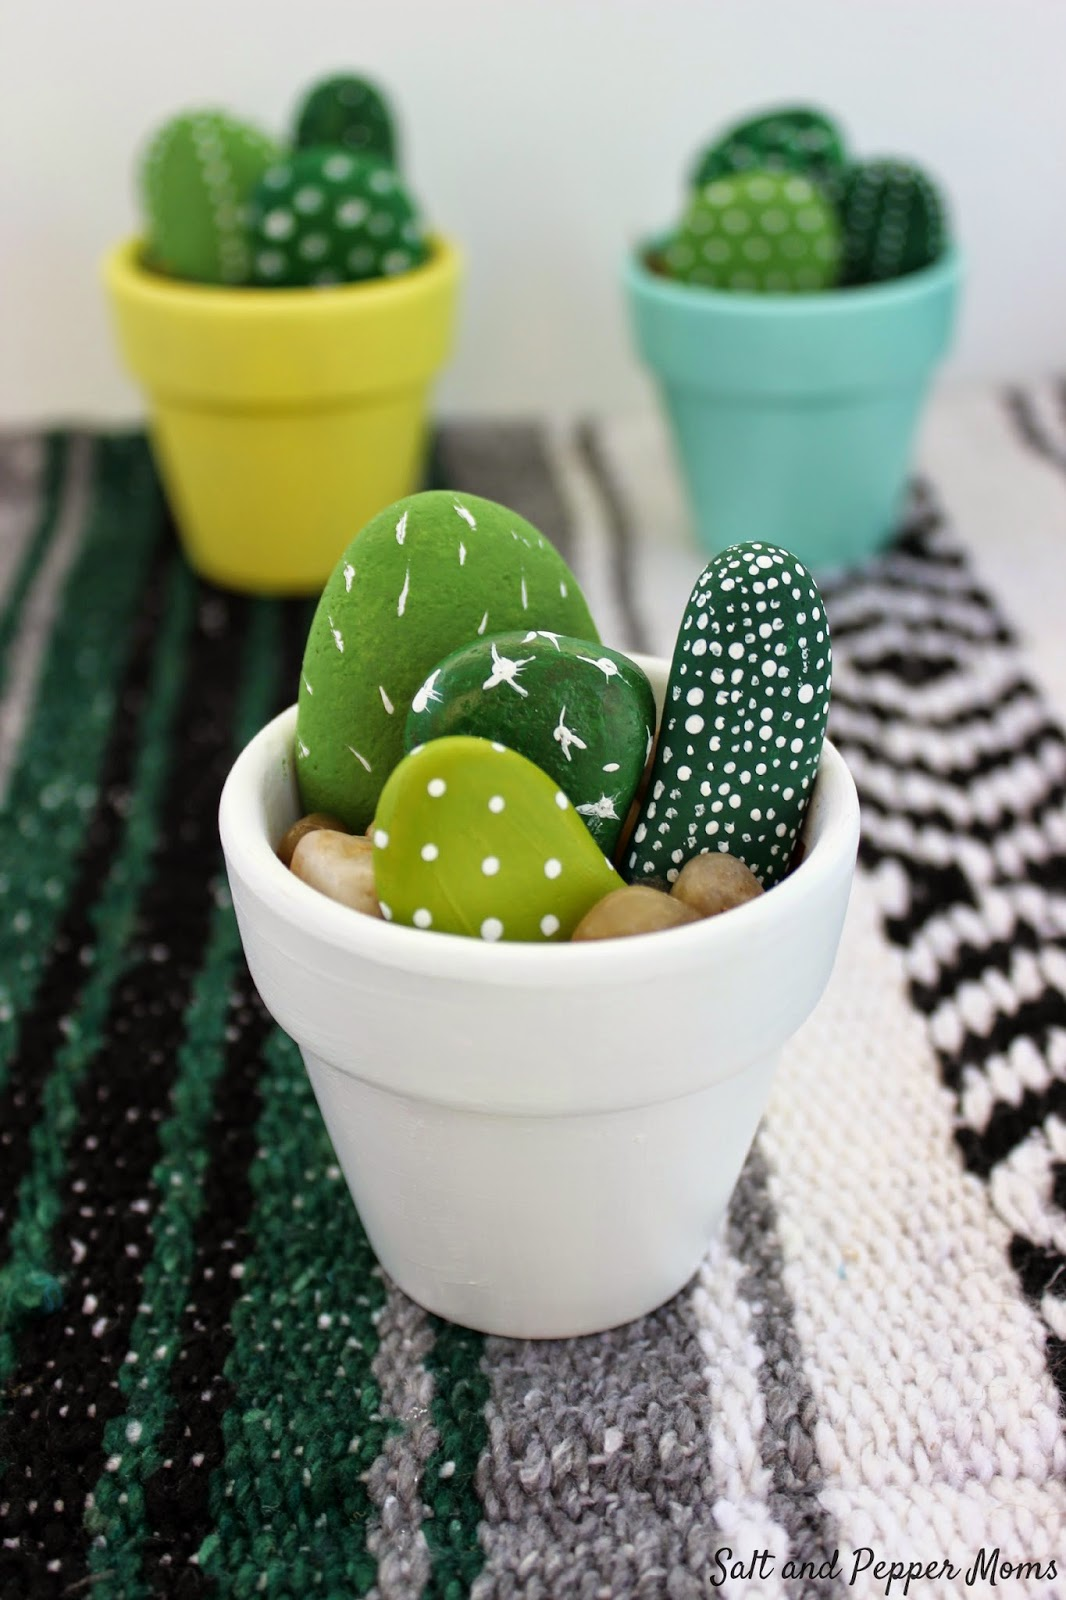 Rock and Stone Crafts - Hand Painted Mini Cactus - DIY Ideas Using Rocks, Stones and Pebble Art - Mosaics, Craft Projects, Home Decor, Furniture and DIY Gifts You Can Make On A Budget #crafts